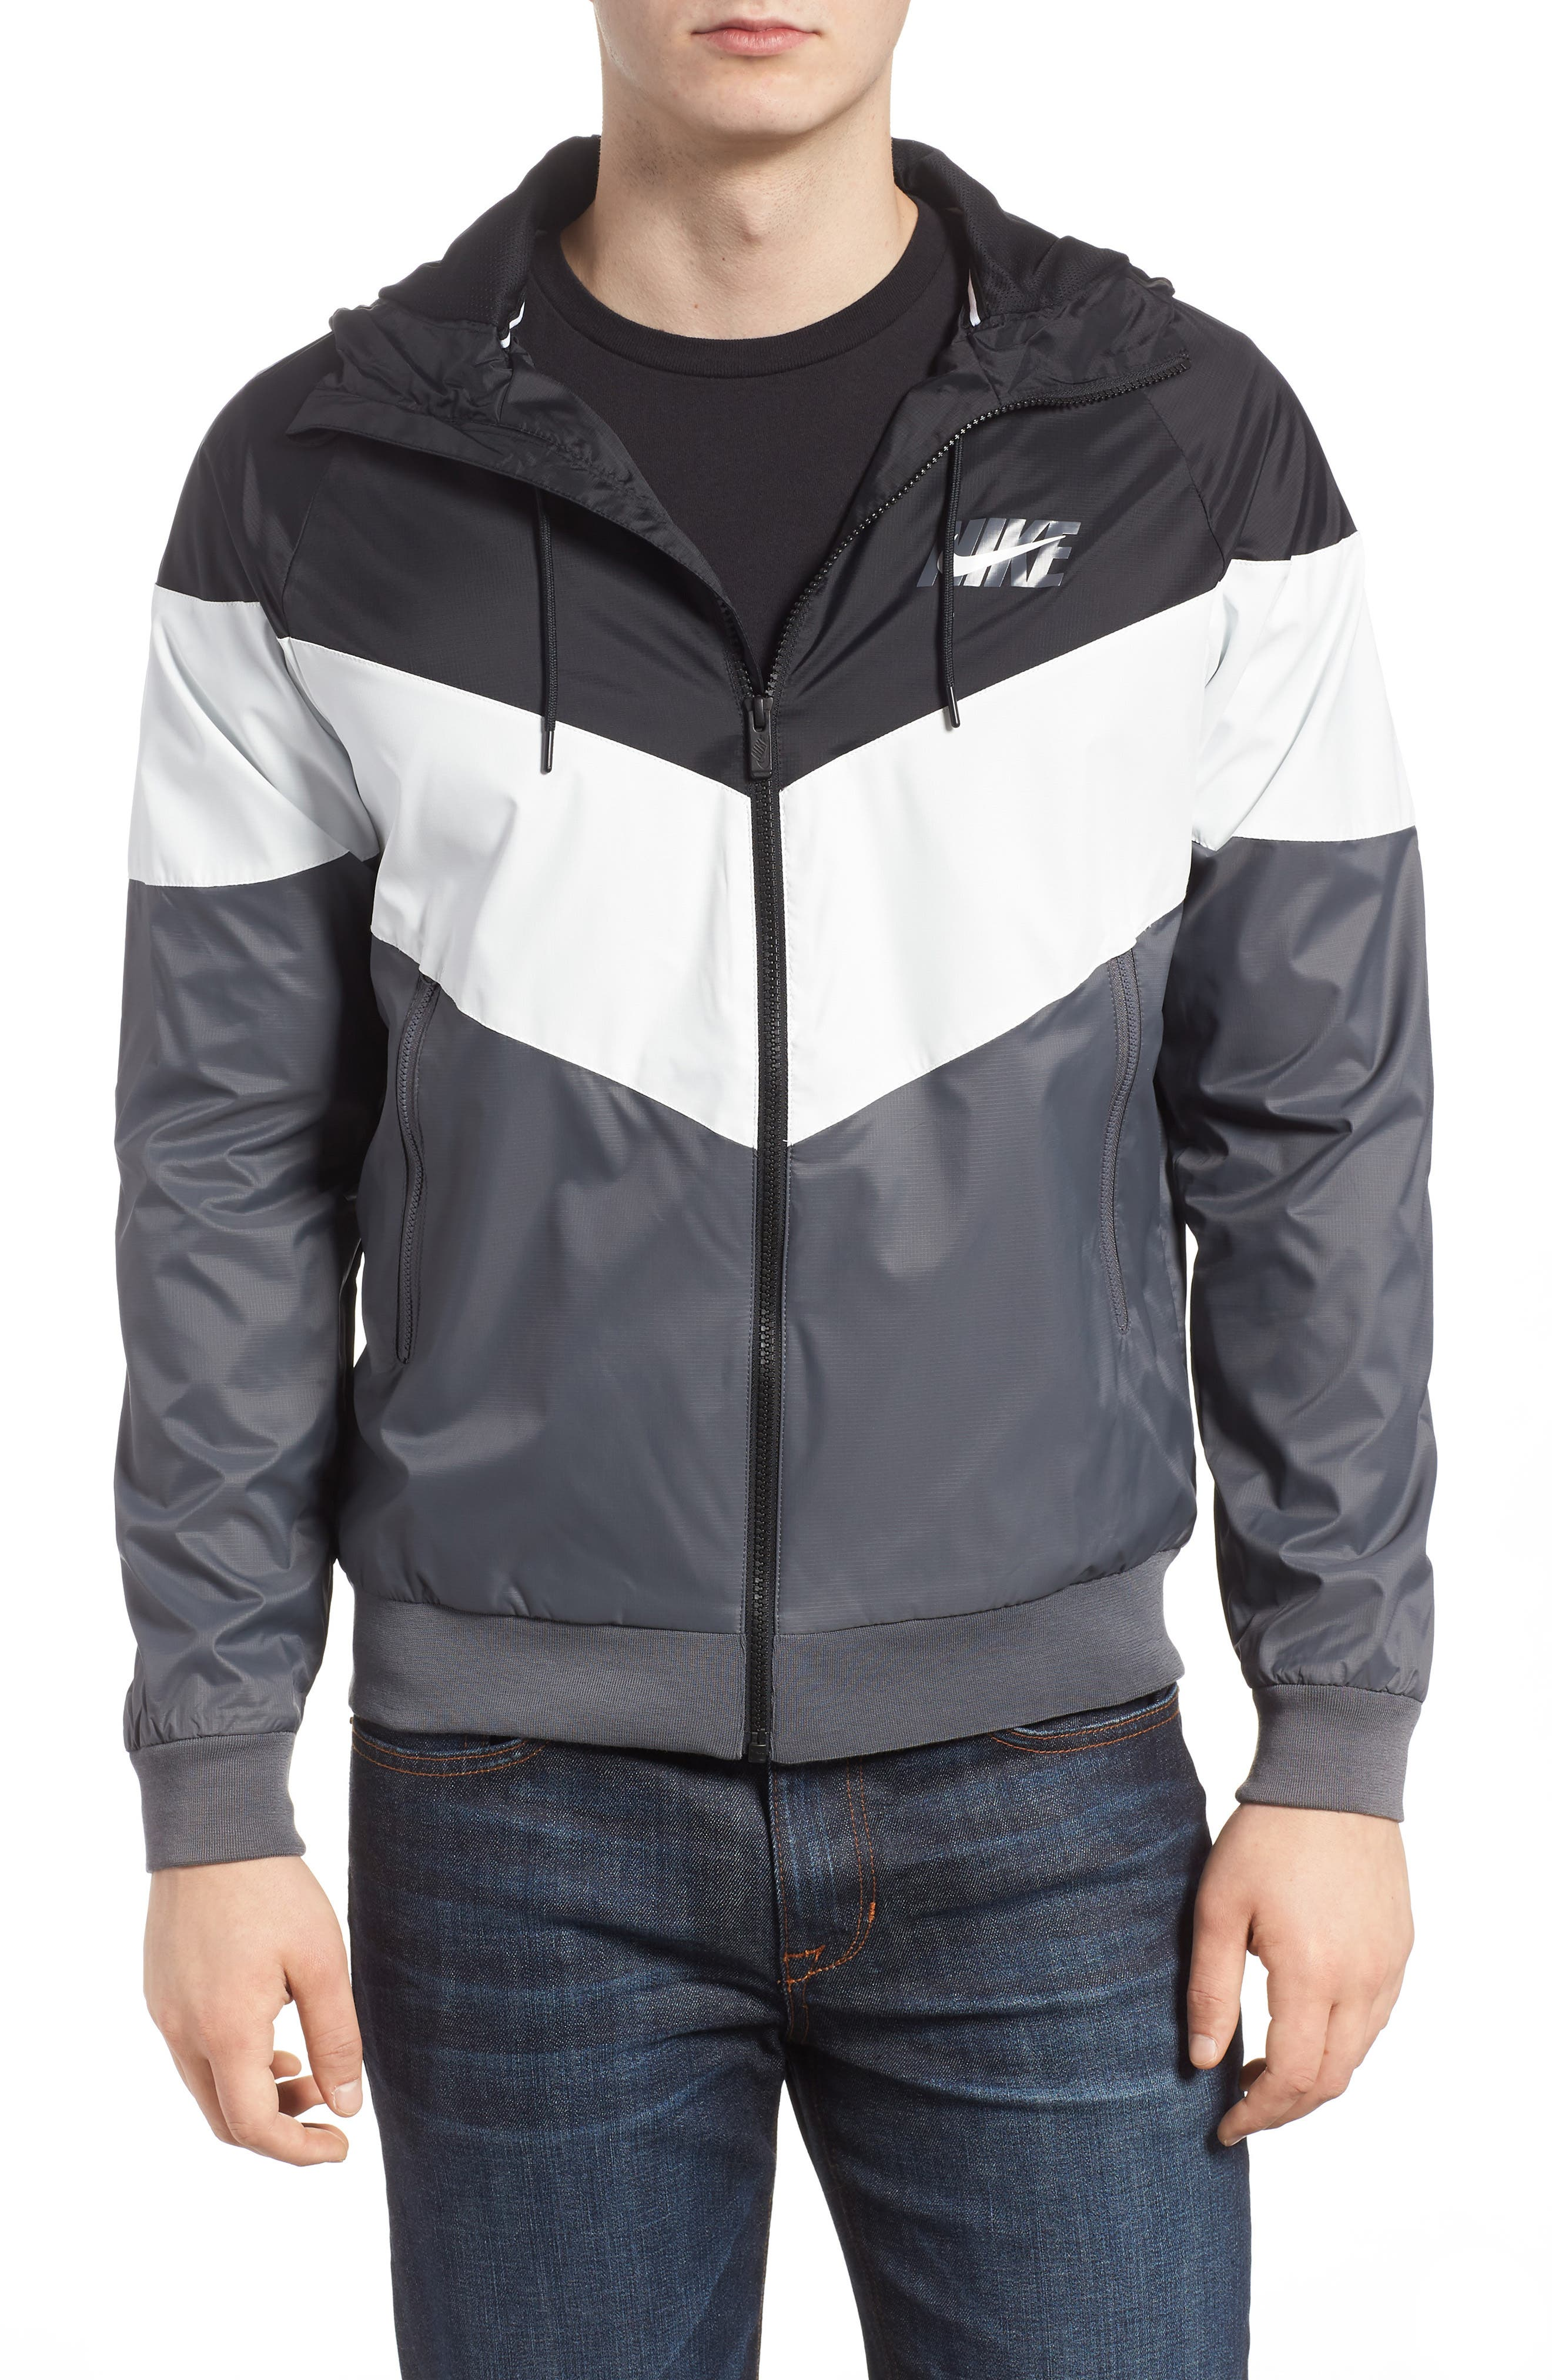 Windrunner Wind & Water Repellent Hooded Jacket by Nike